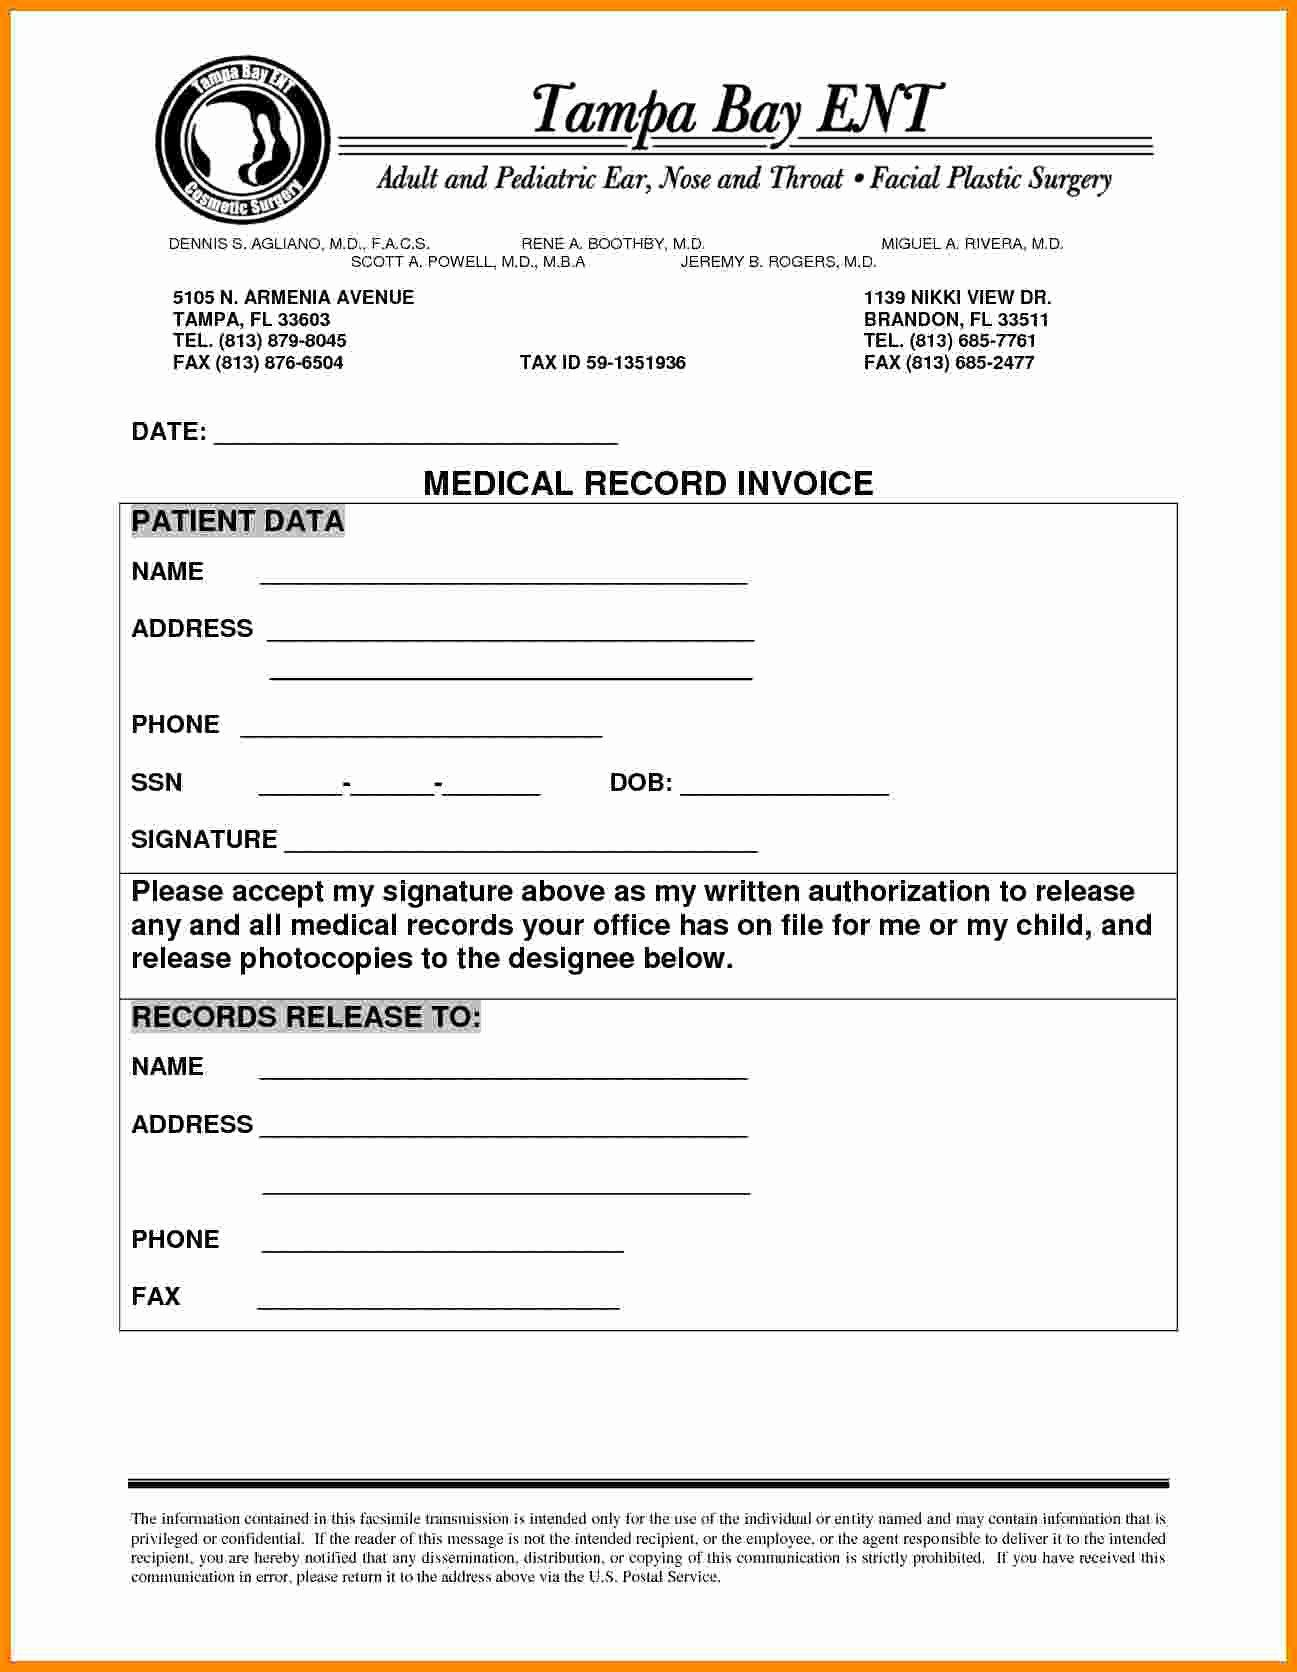 Medical Records Invoice Template Unique 4 Medical Records Invoice Invoice Template Medical Records Medical